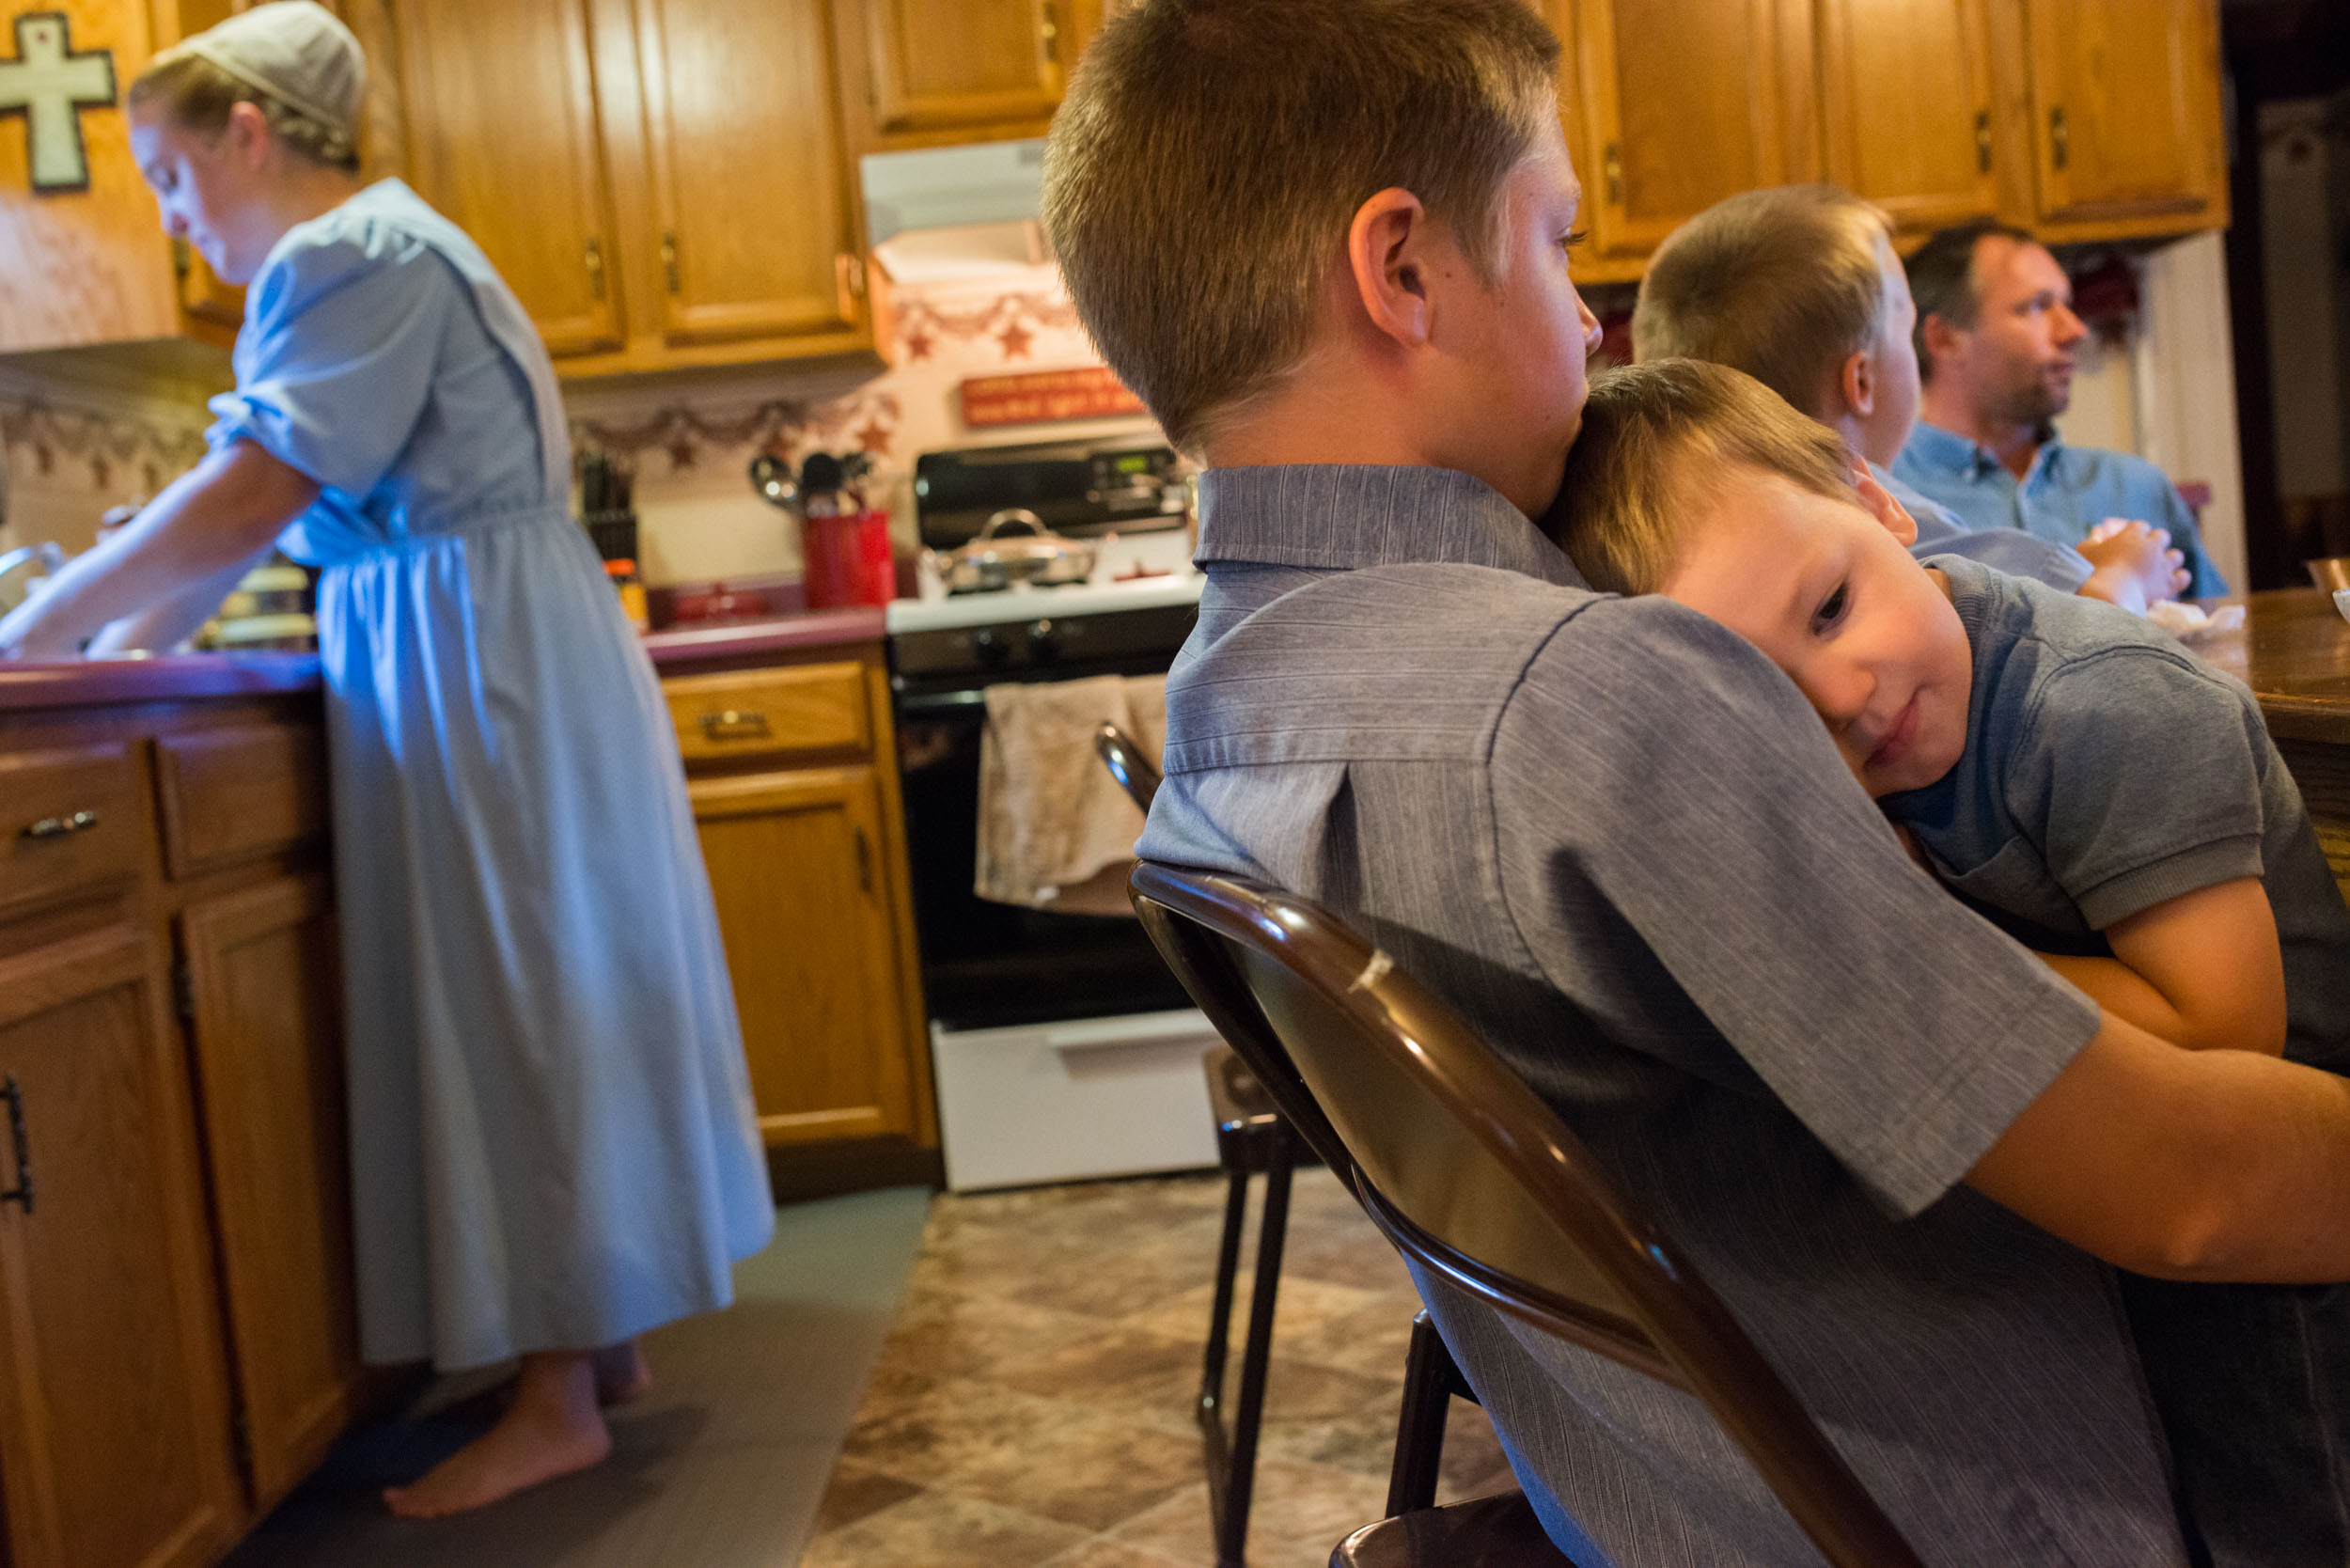 Austin Mast, embraces his brother Colton Mast, at the breakfast table before departing for school. Austin and two other siblings attend a private Mennonite school, while the youngest two children remain at home with Ruthann.